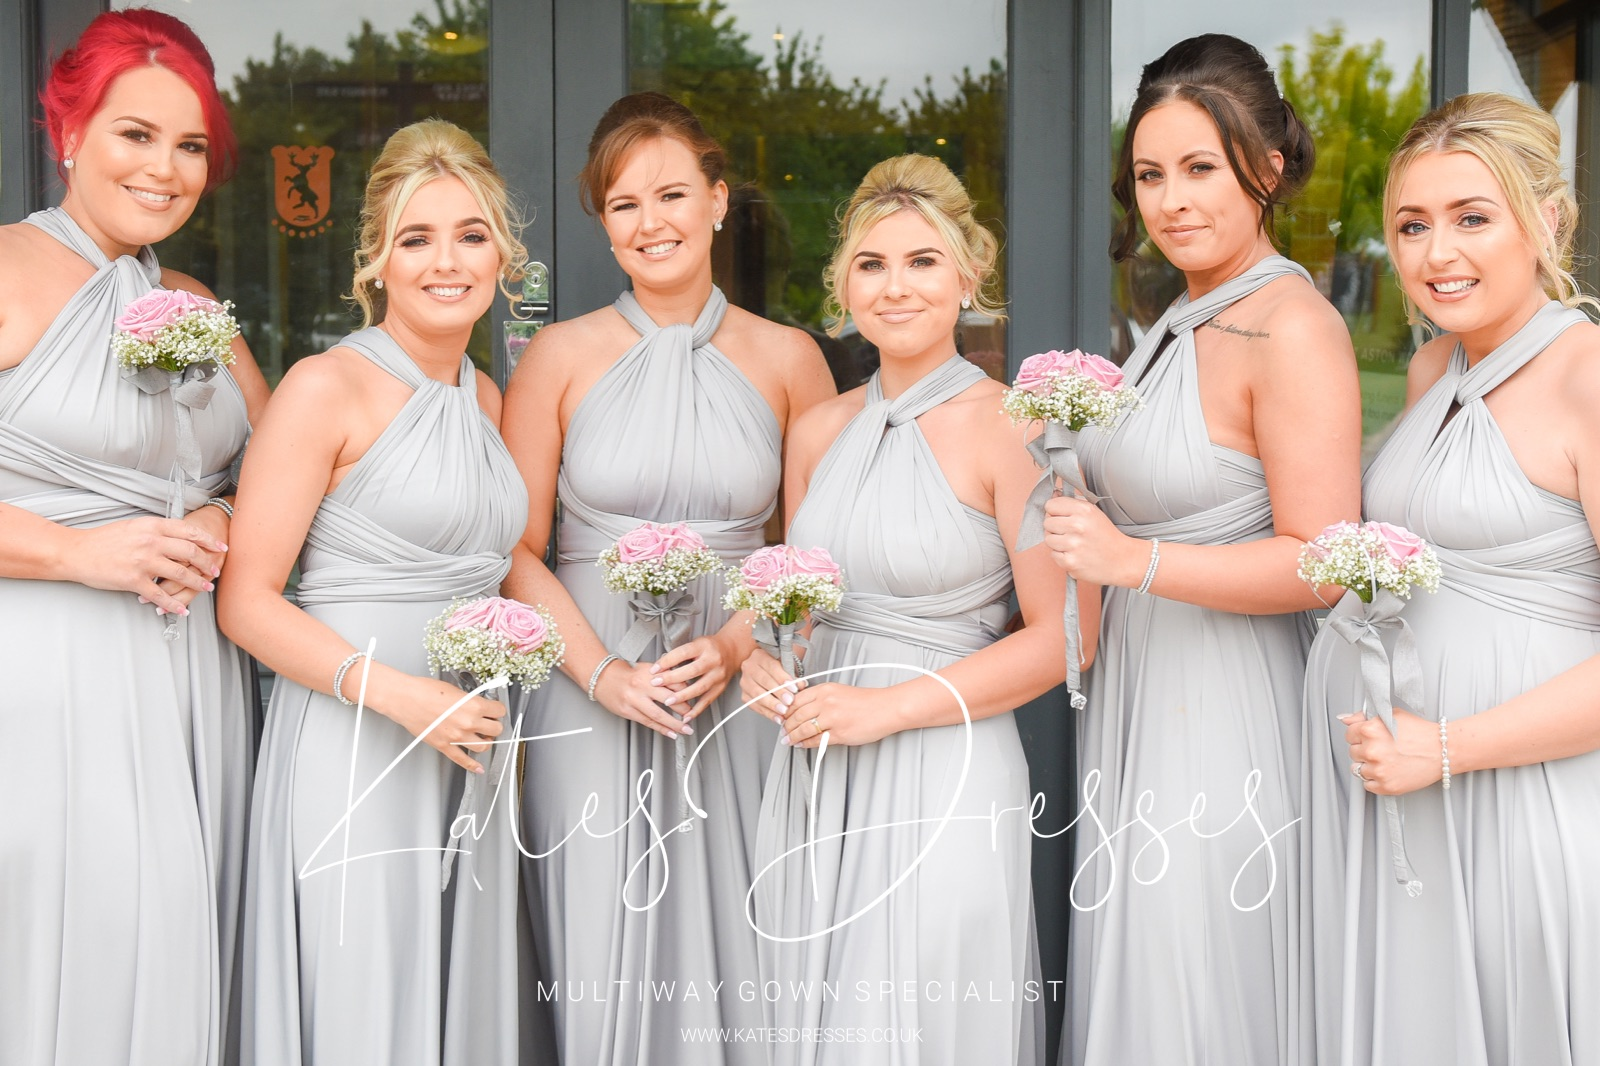 Kates Dresses has been nominated for The Wedding Industry Awards!